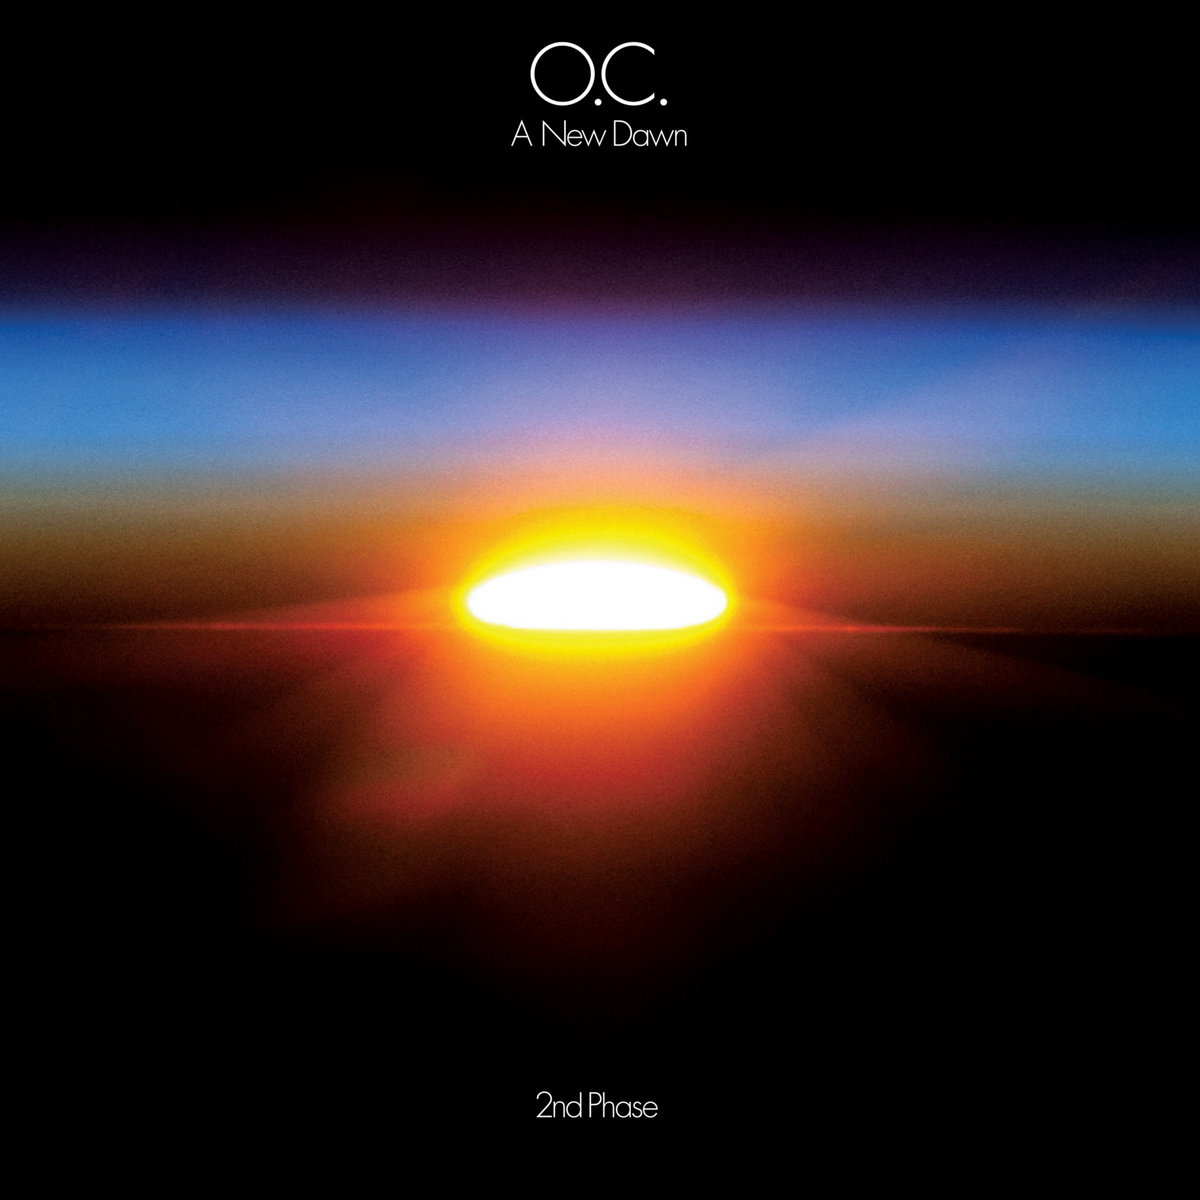 O.C. - A NEW DAWN: 2nd PHASE LP Review